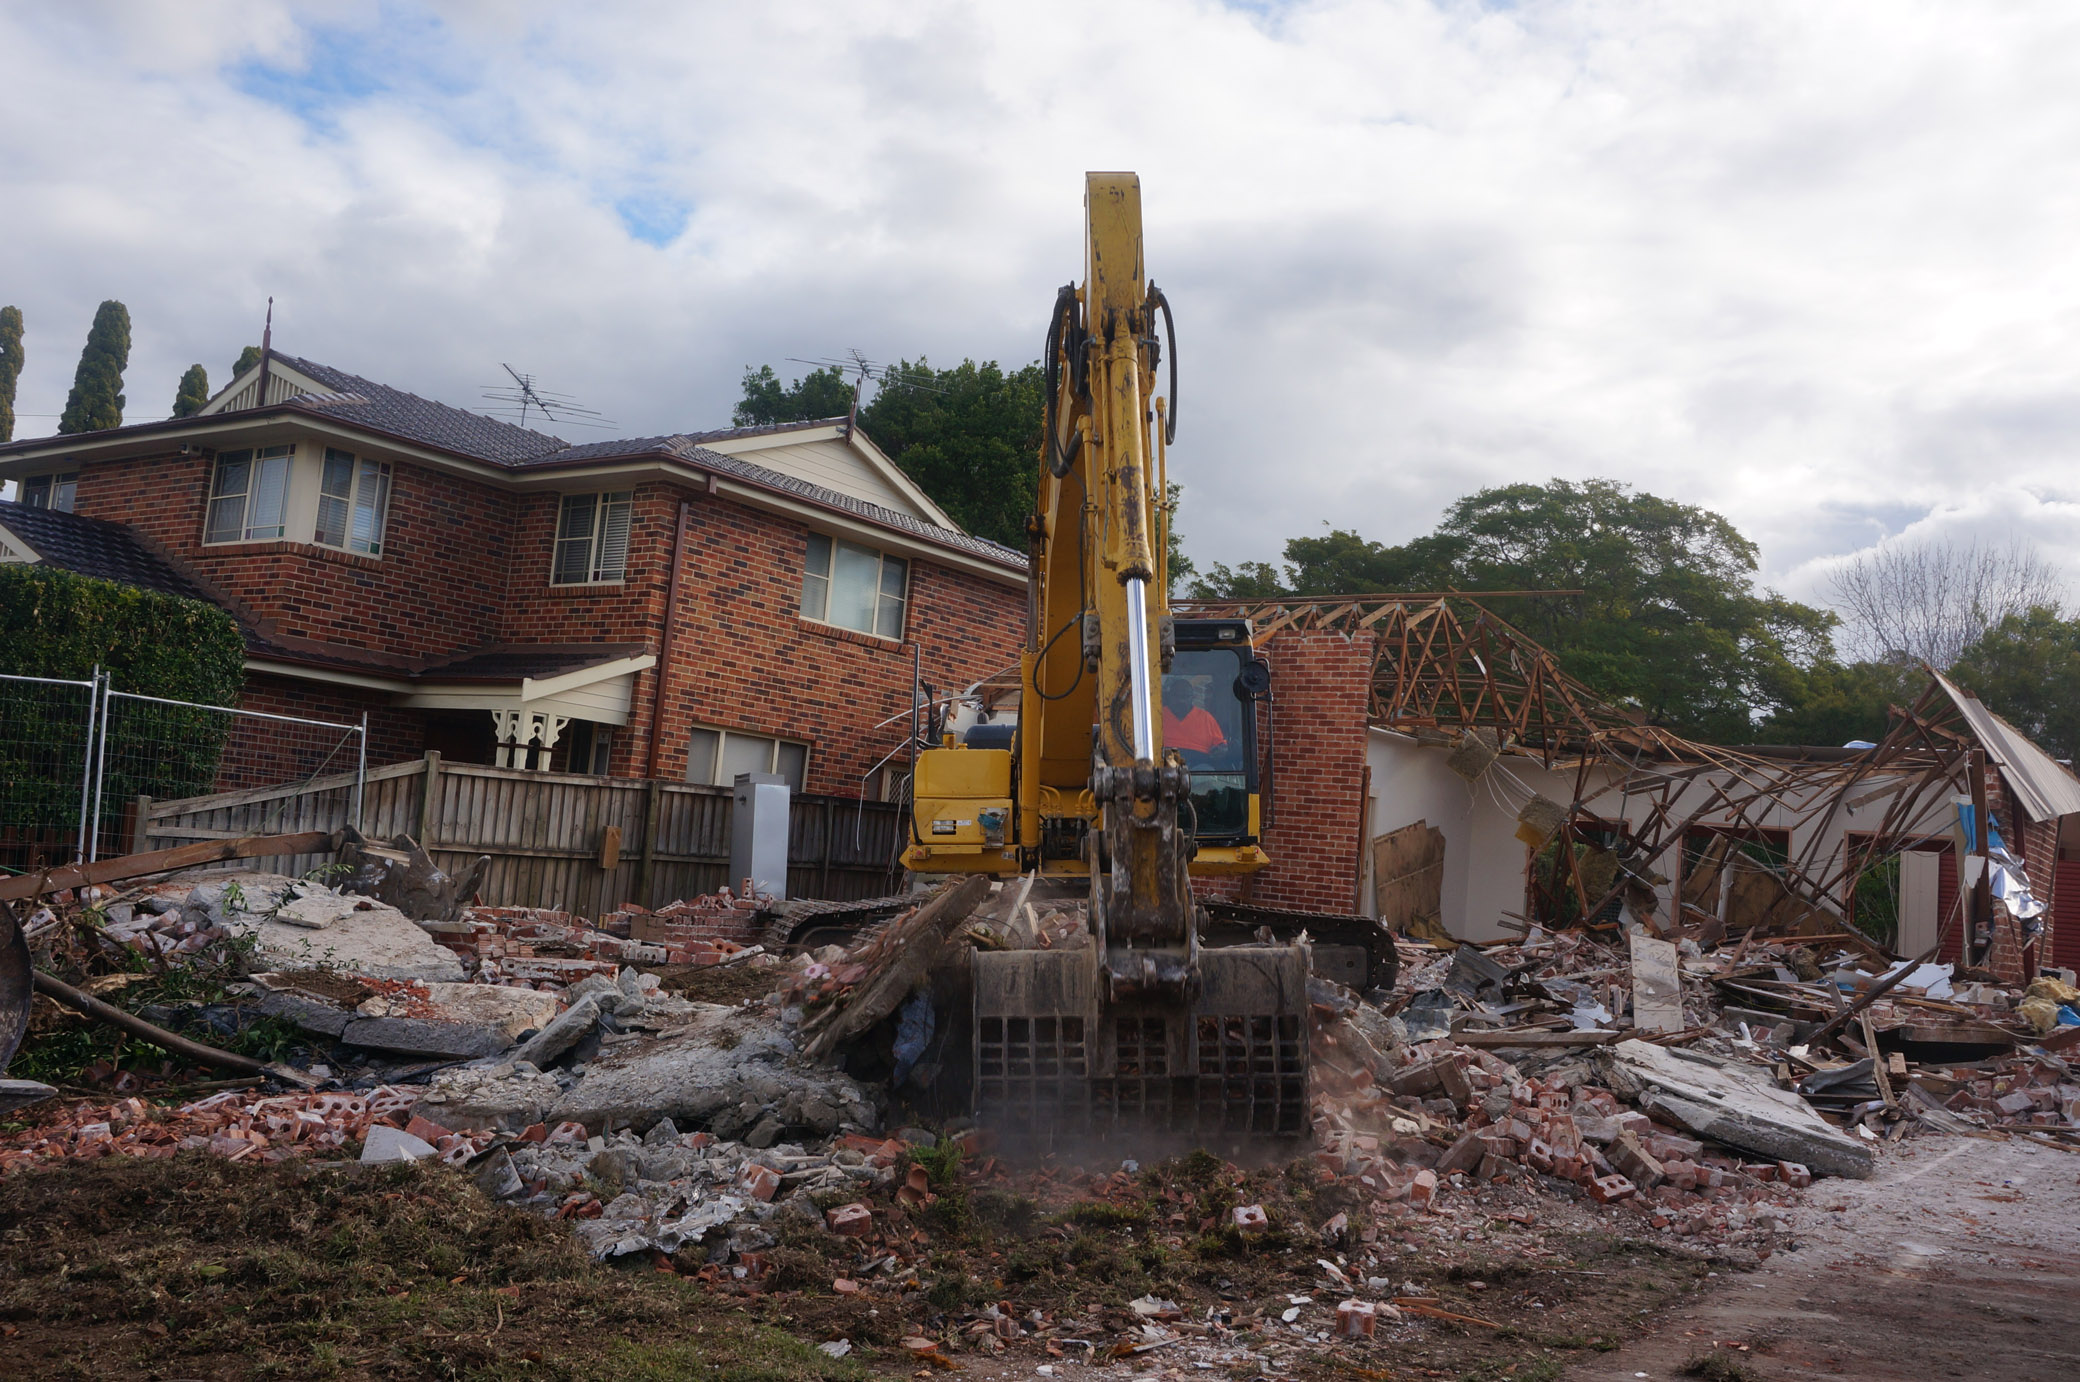 Excavator clearing cement and smashed brick at demolition site in West Ryde.jpg